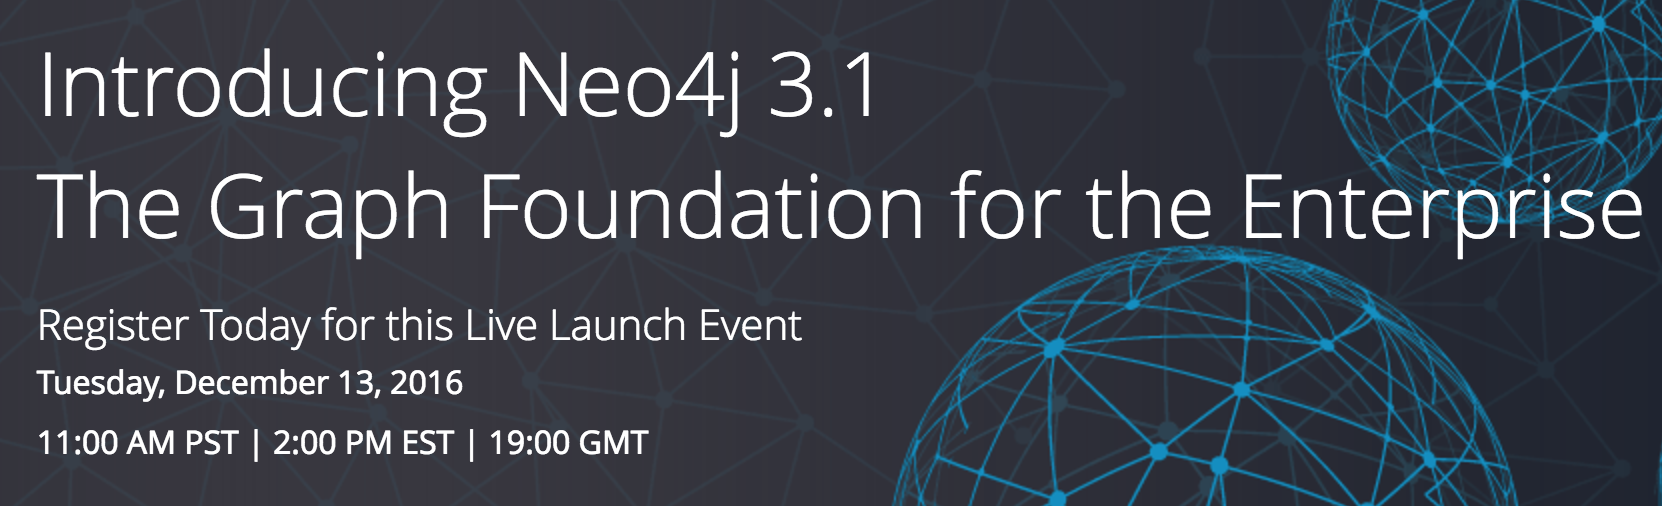 Learn all about the GA release of Neo4j 3.1 and the live launch event introducing it to the world